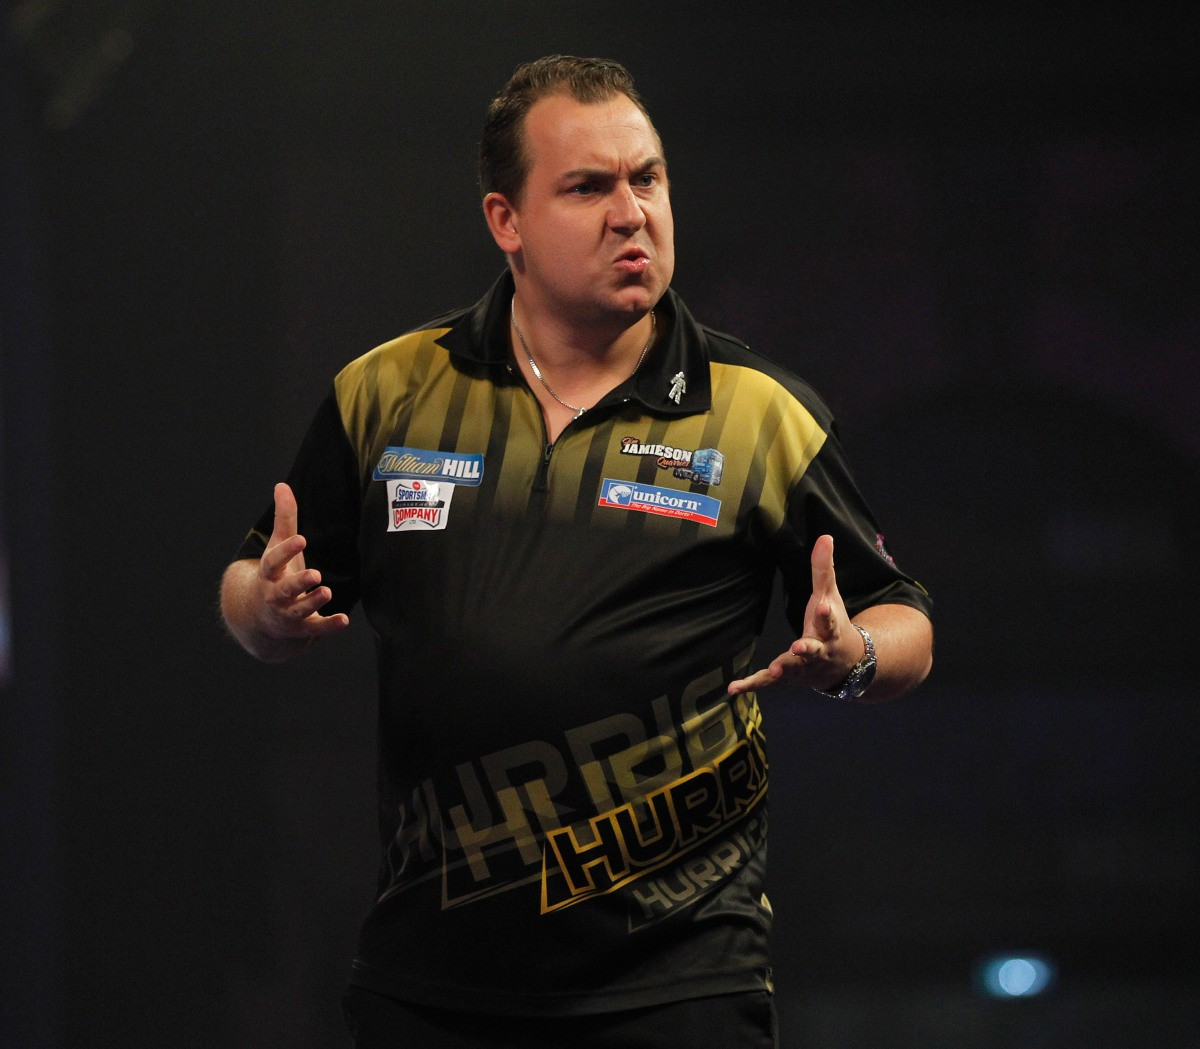 Lockup Dave's Betting Column: Huybrechts and Klaasen to come through second roundhurdles